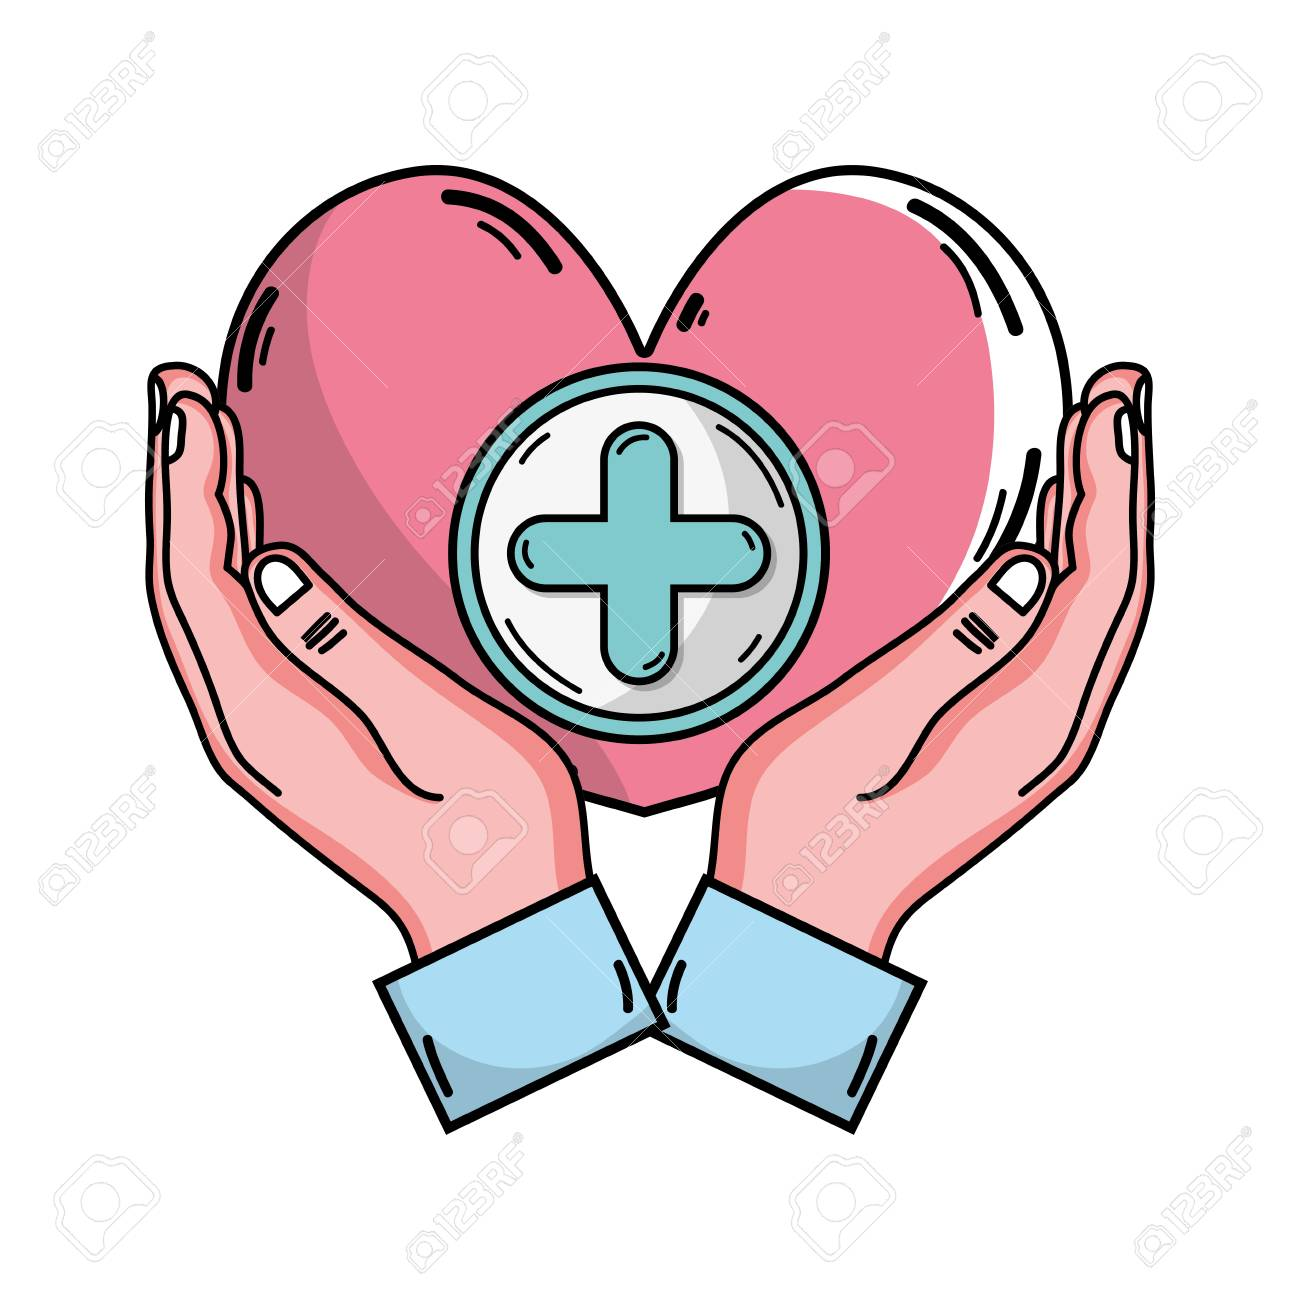 1300x1300 Drawing Of Hands Holding A Heart Shape With A Positive Or Cross